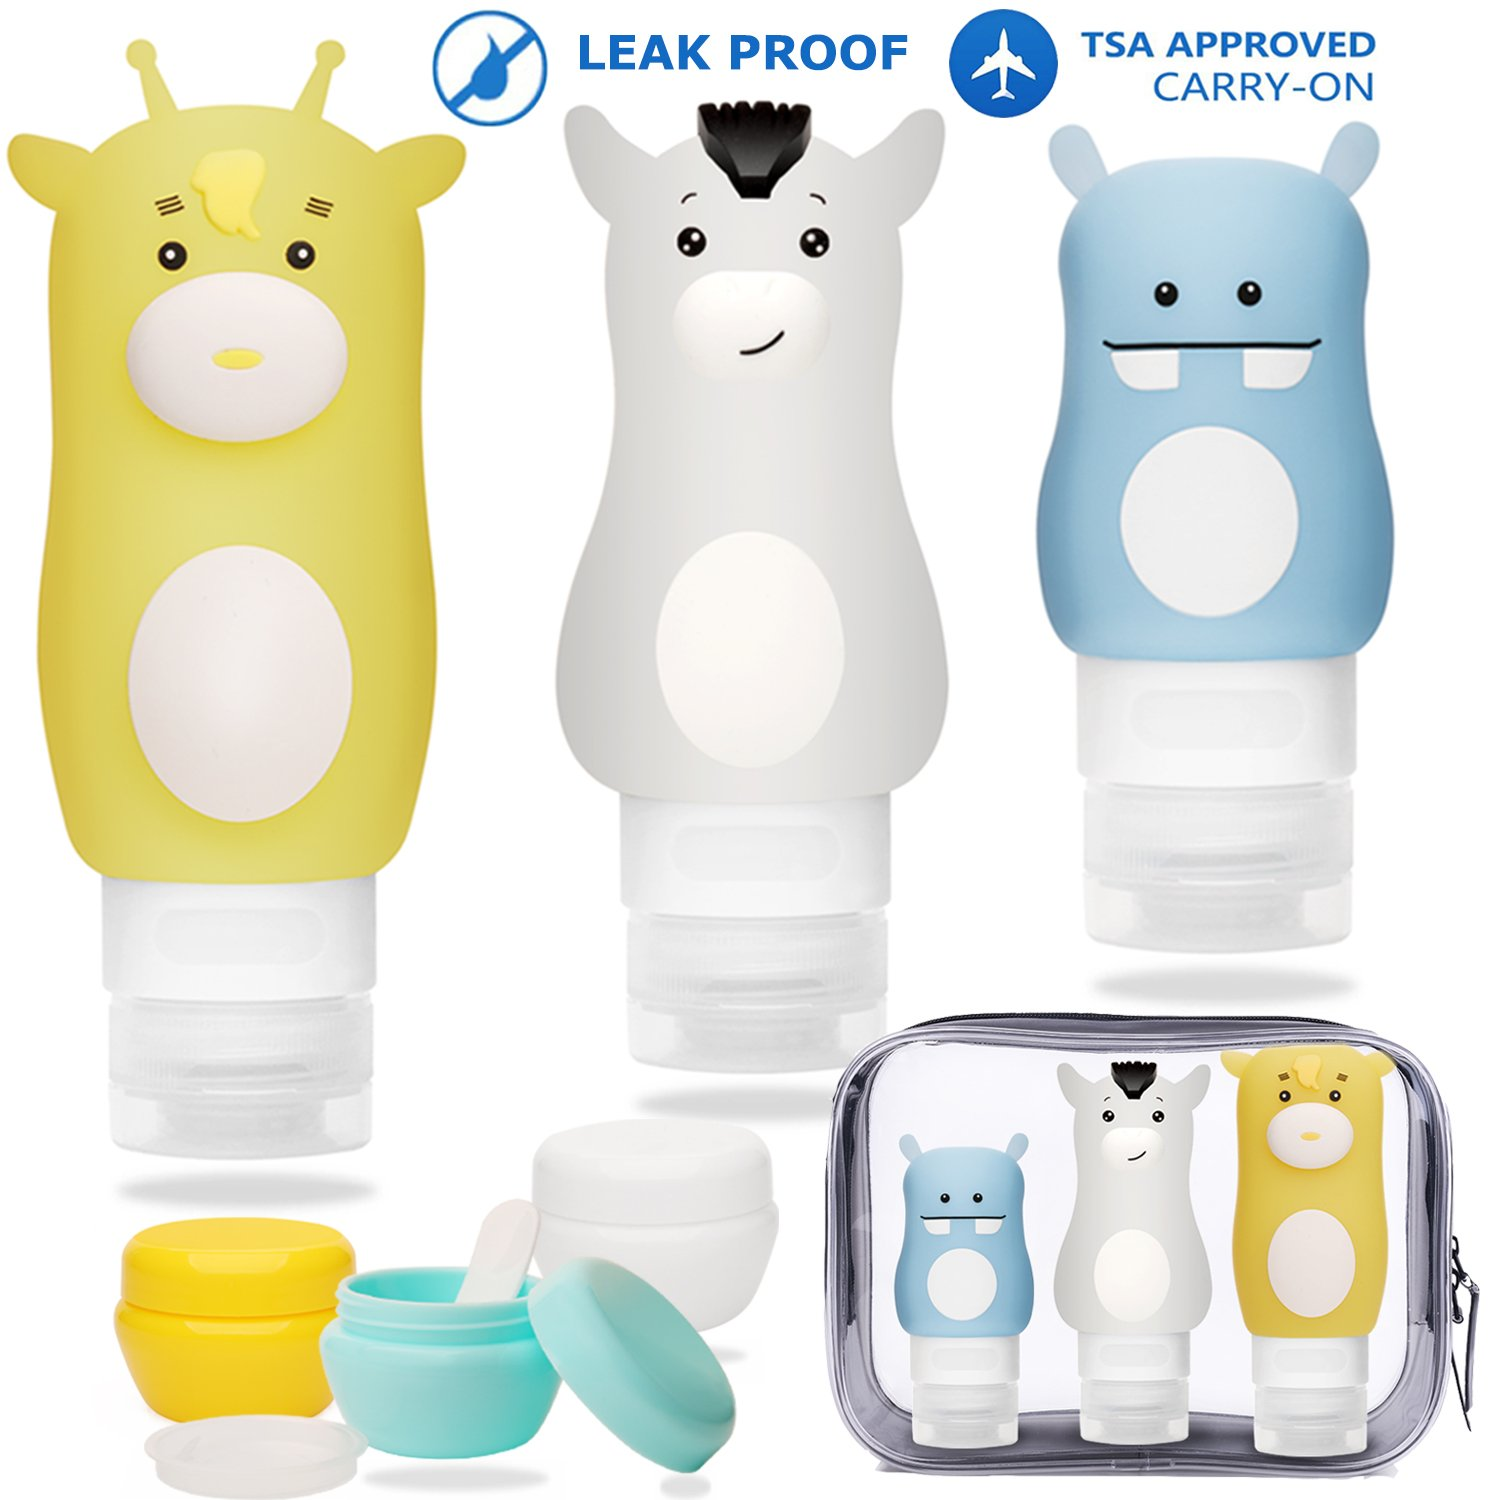 Portable Silicone Travel Bottles Set Leakproof Cosmetic Containers Refillable for Conditioner Lotion Body Wash Sunscreen Toiletries TSA Approved Cream Jar Included